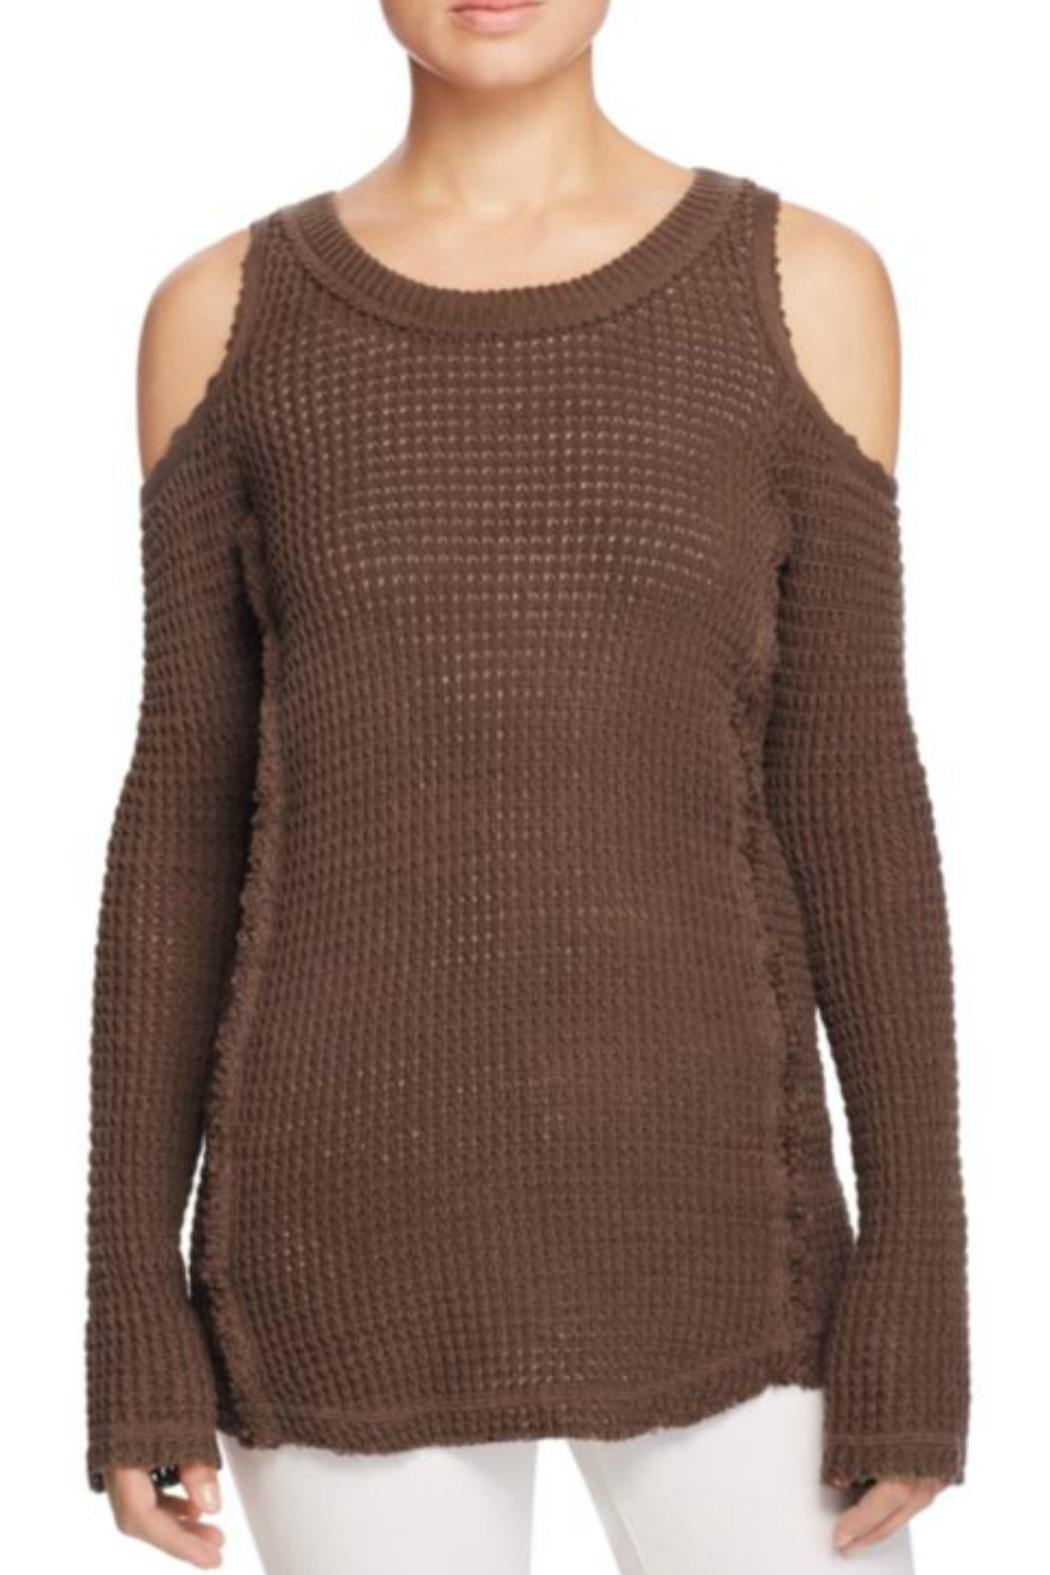 72ad9398f3 Elan Cold Shoulder Sweater from Westhampton Beach by Chic — Shoptiques